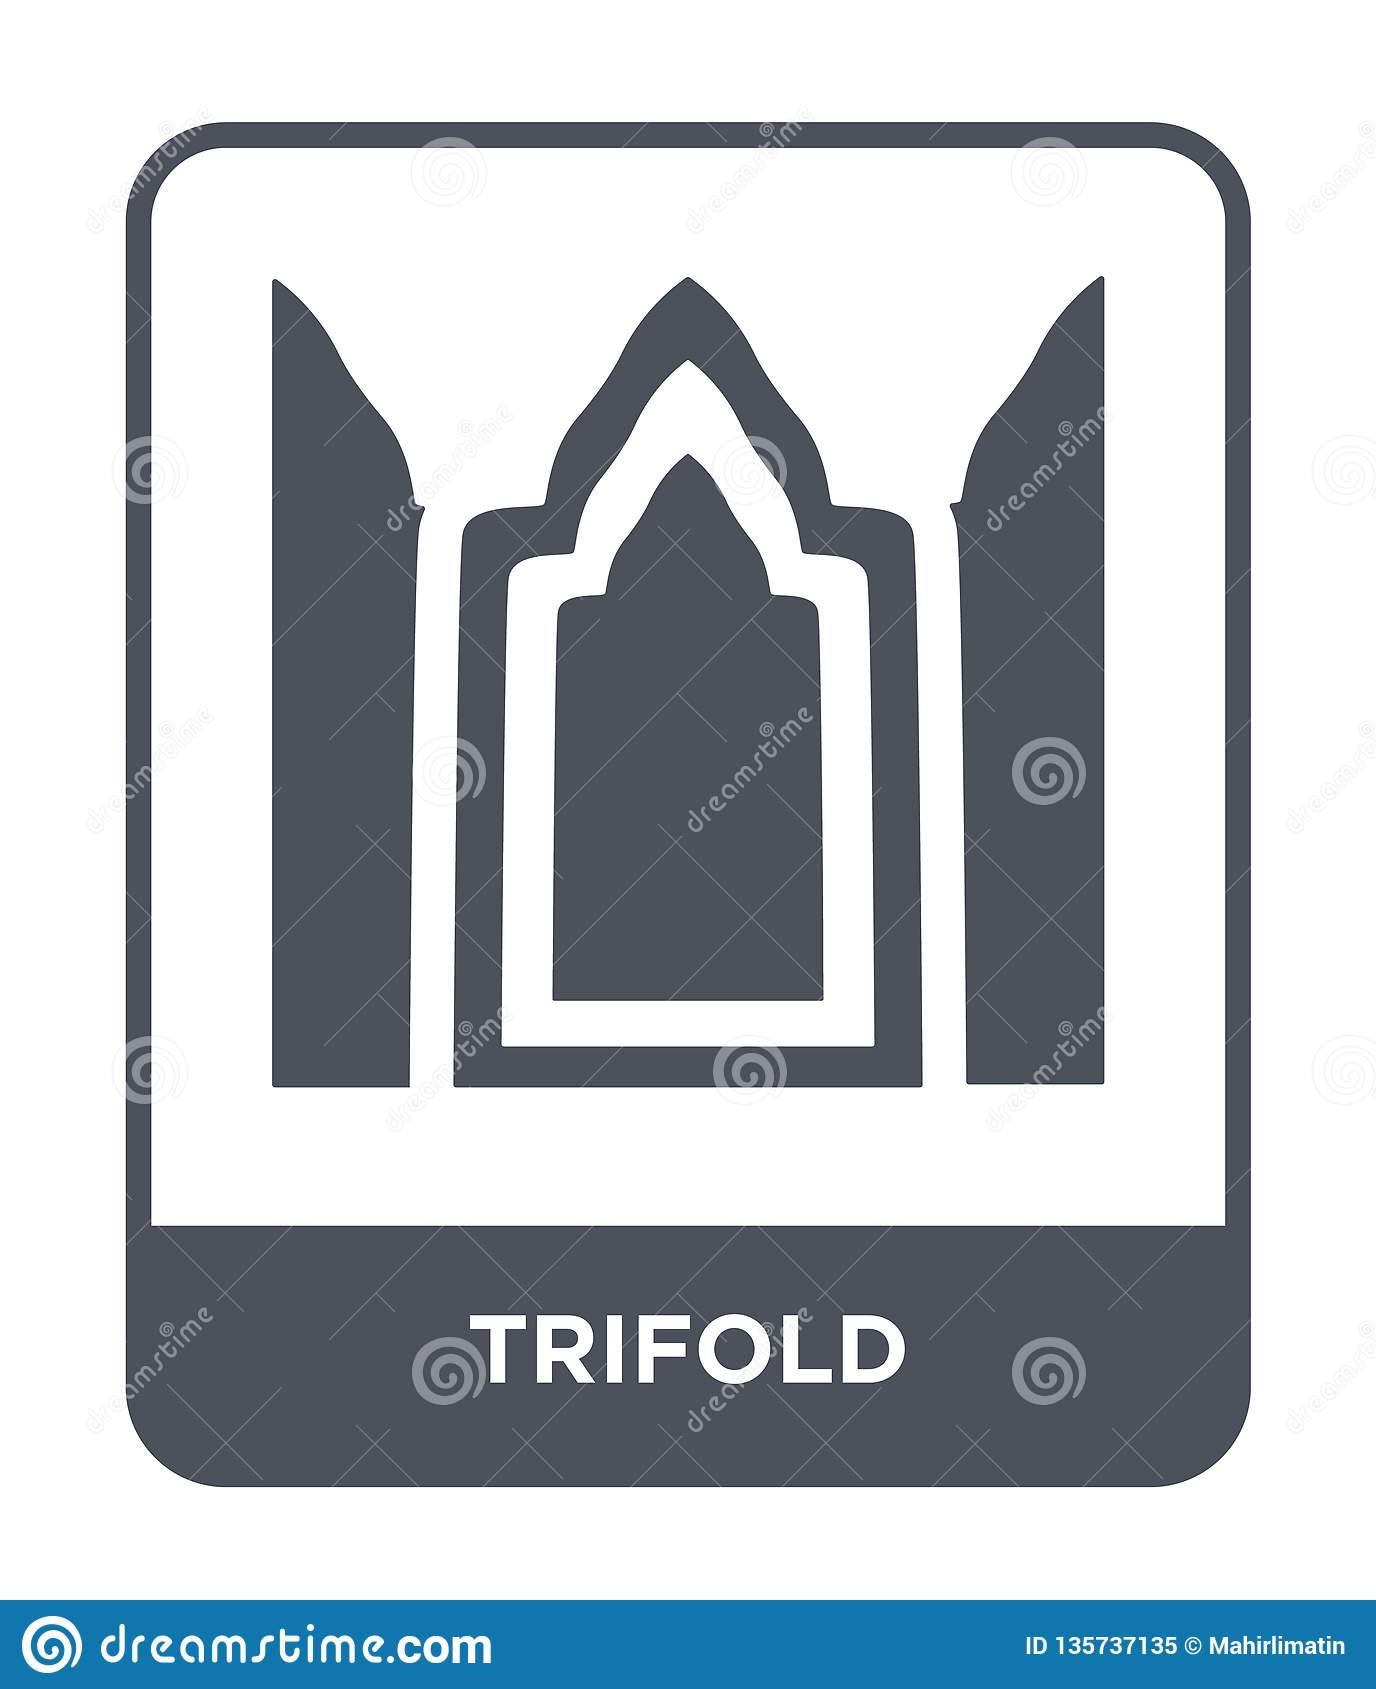 trifold icon in trendy design style. trifold icon isolated on white background. trifold vector icon simple and modern flat symbol